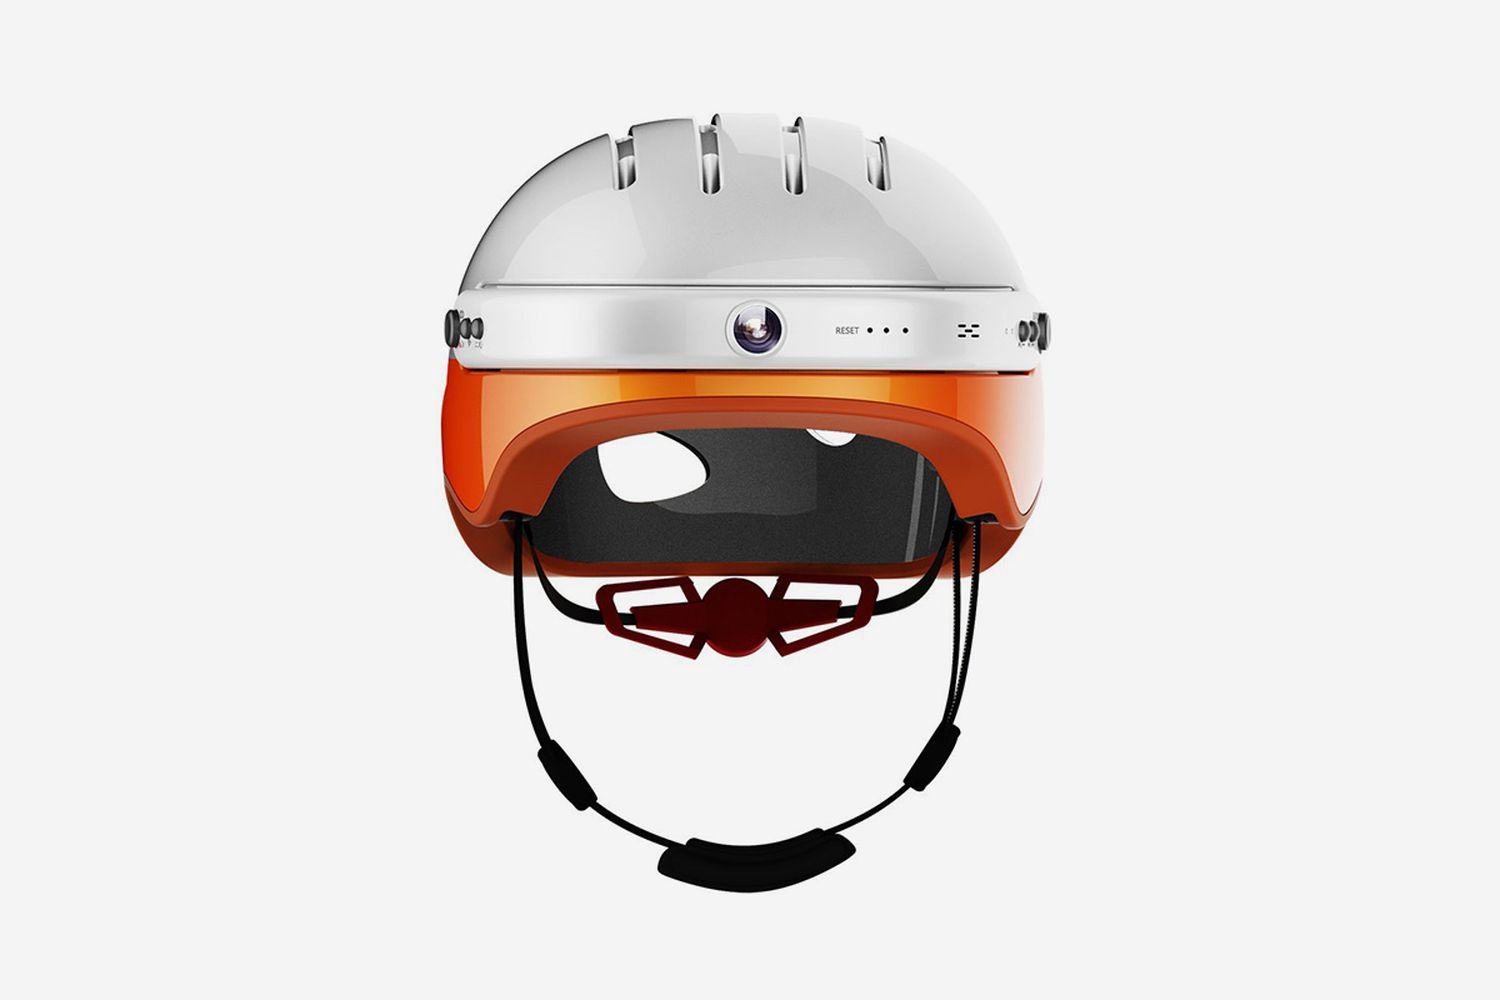 C5 Helmet with Camera & Bluetooth Speaker